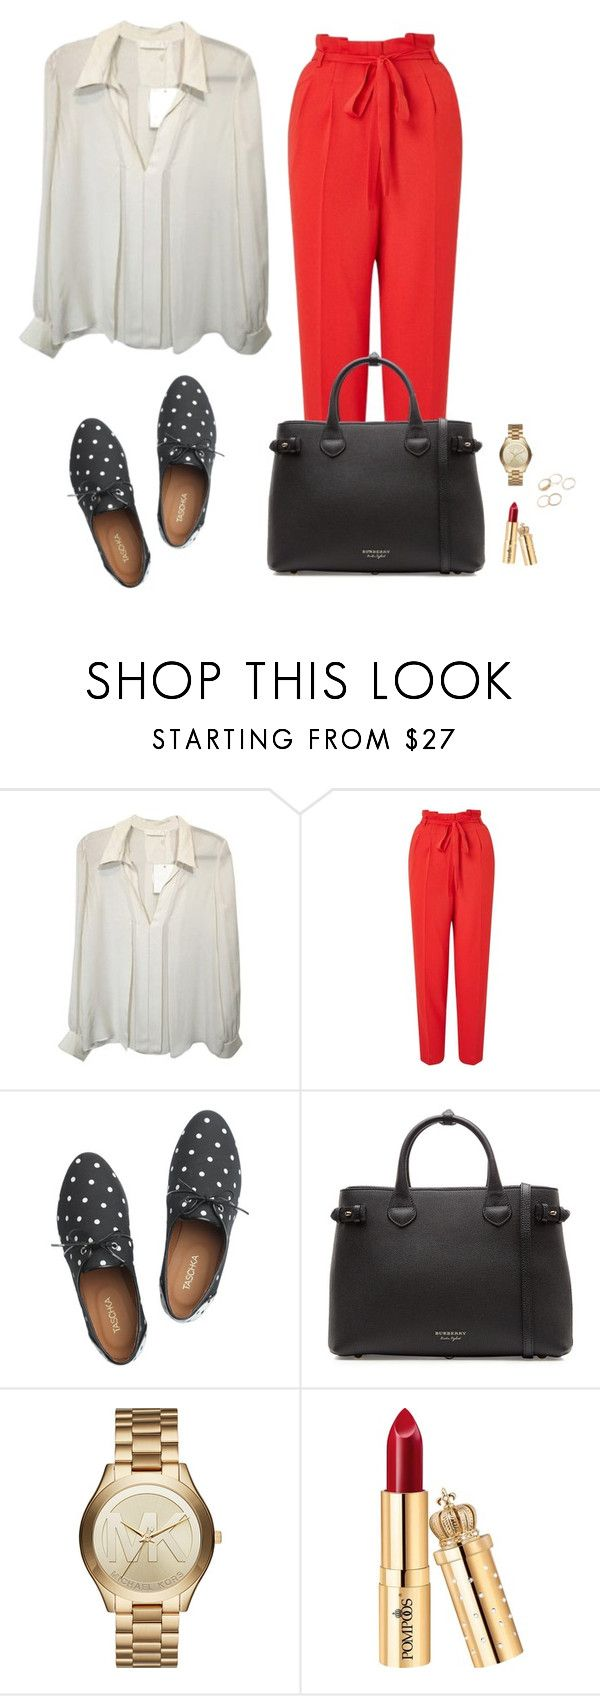 """Office look"" by monika1555 on Polyvore featuring Miss Selfridge, Taschka, Burberry and Michael Kors"